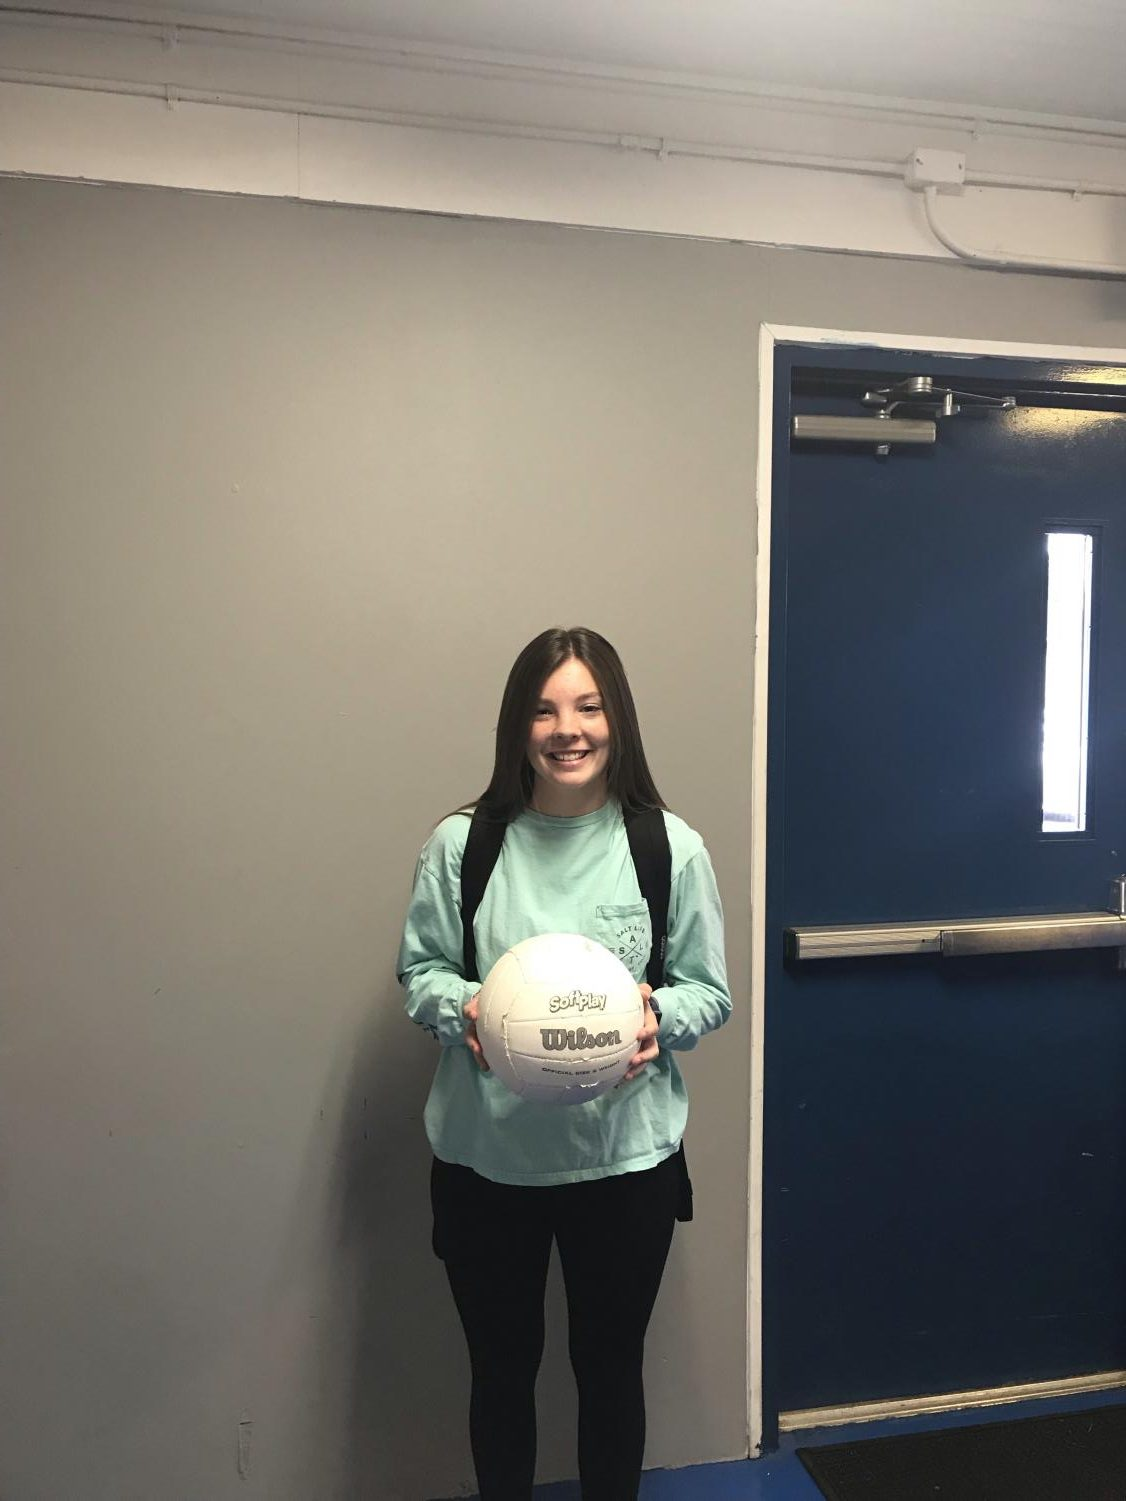 Jayden Nantz is the newest and only girls' volleyball player on the 2020 Lady Tigers volleyball team.